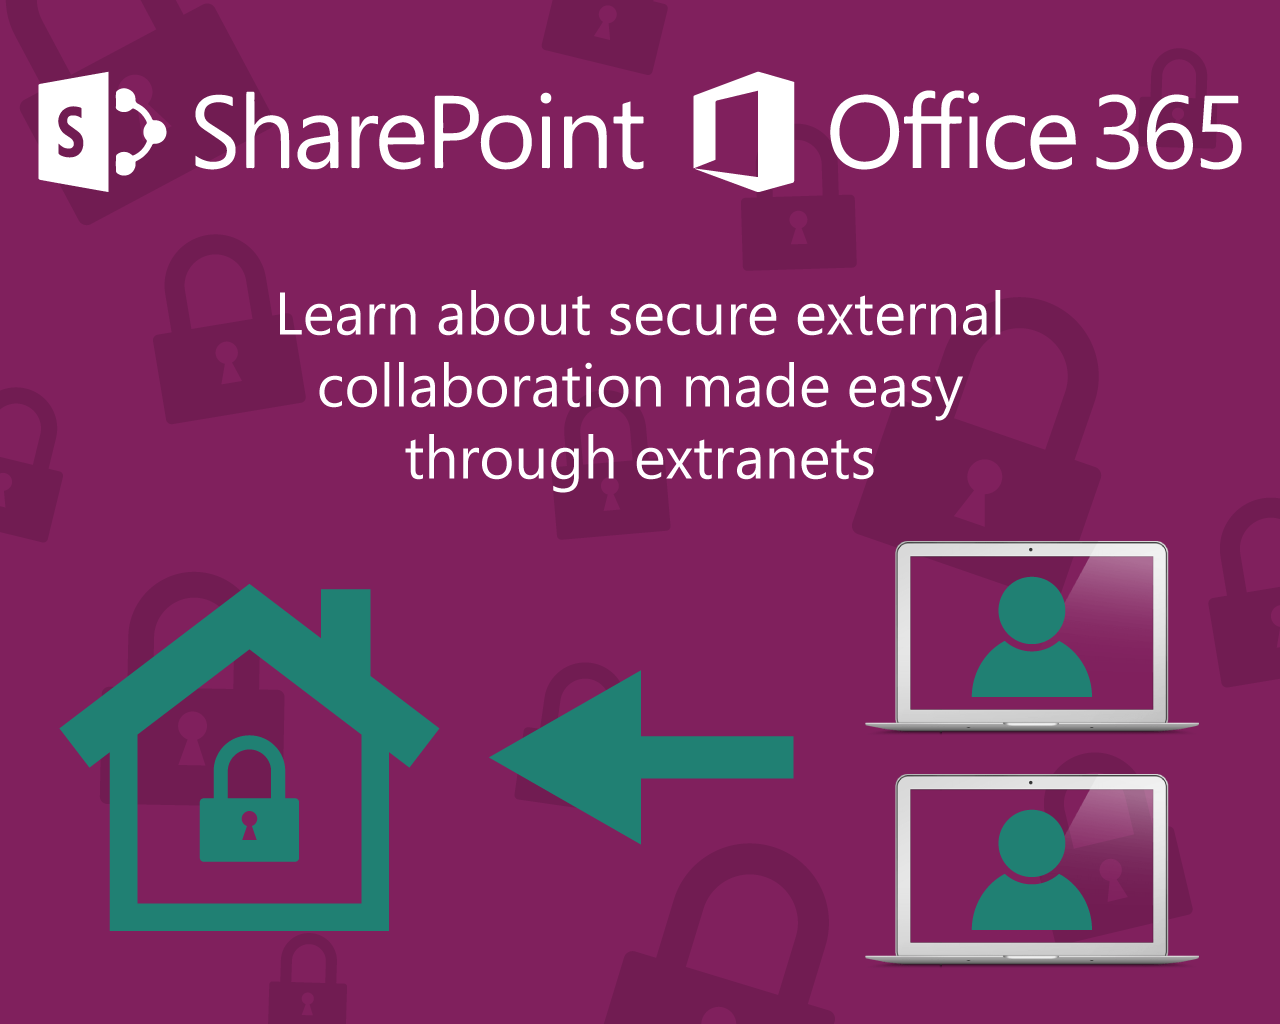 Extranets in SharePoint and Office 365